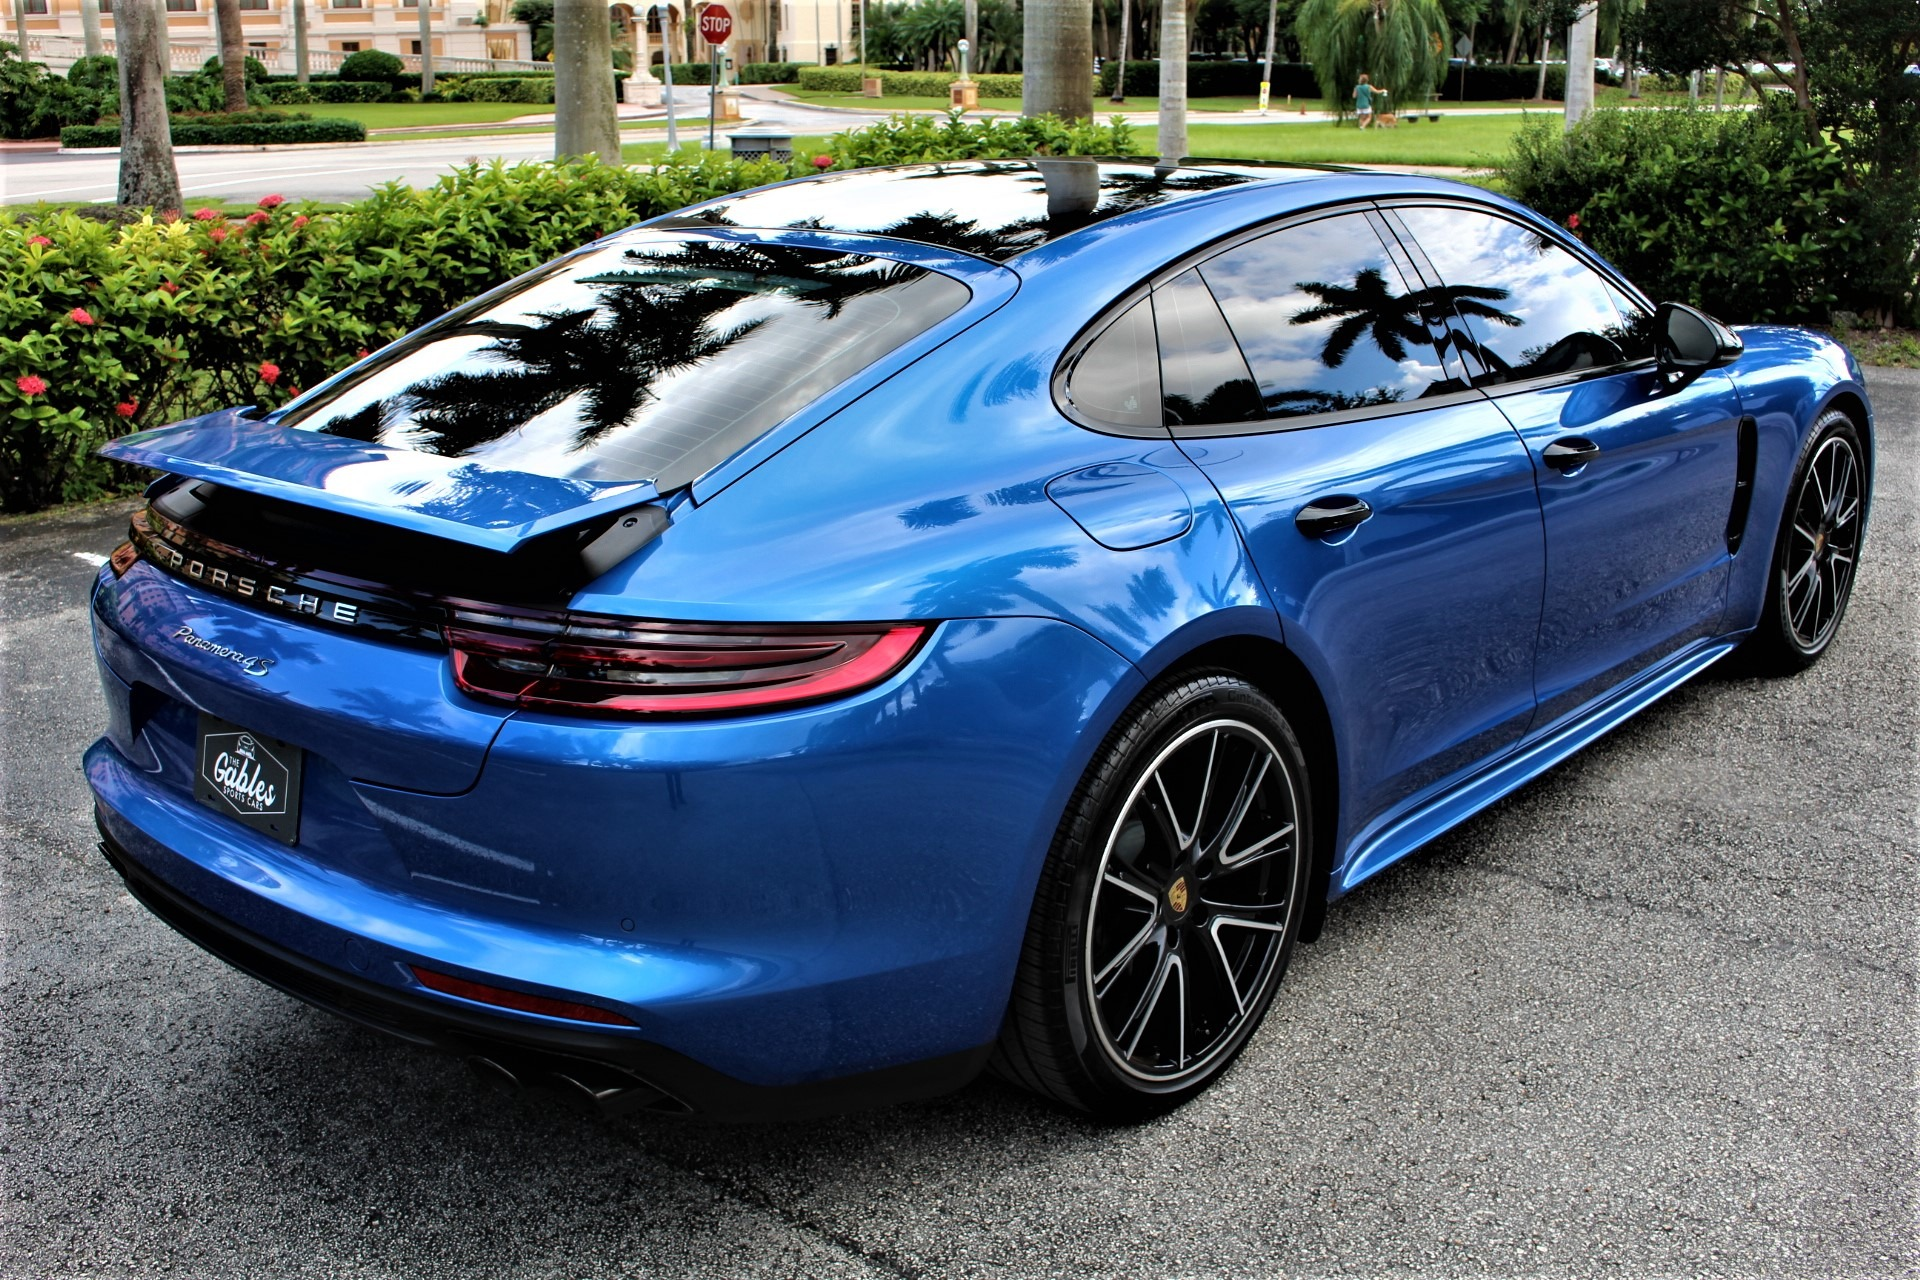 Used 2018 Porsche Panamera 4S for sale Sold at The Gables Sports Cars in Miami FL 33146 3